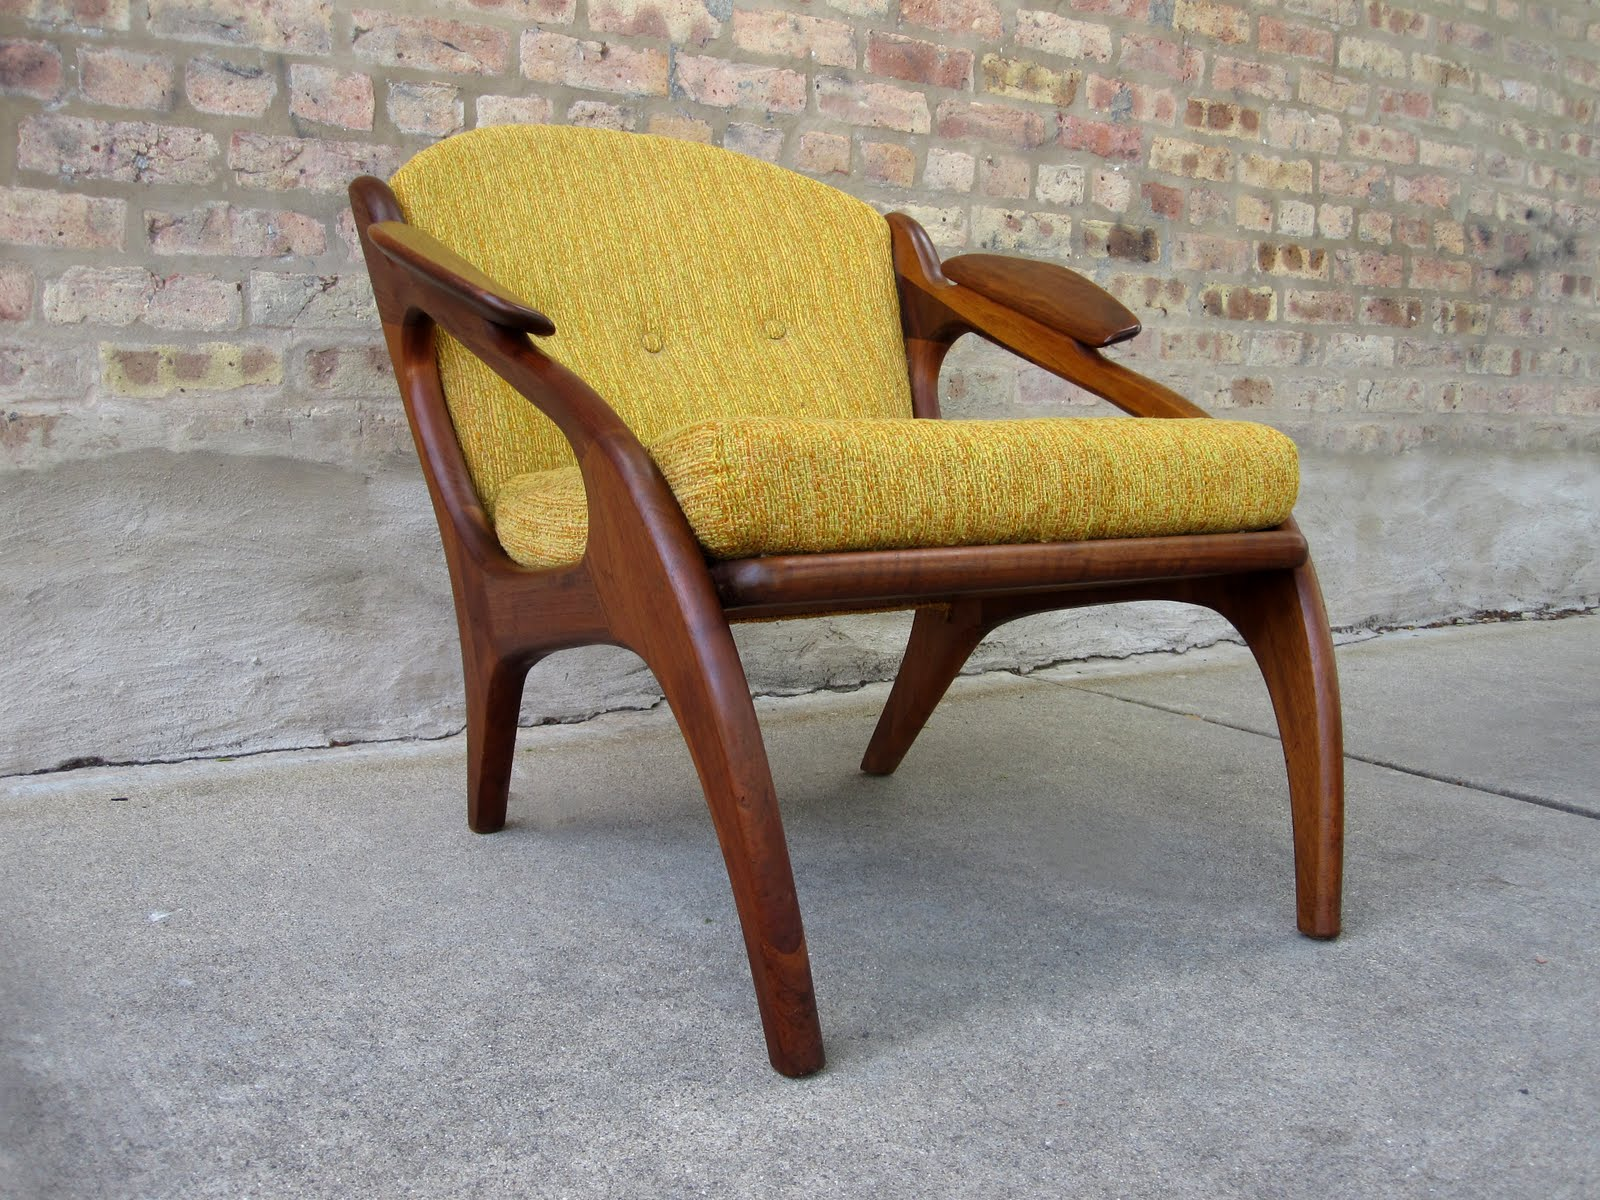 circa midcentury adrian pearsall lounge chair